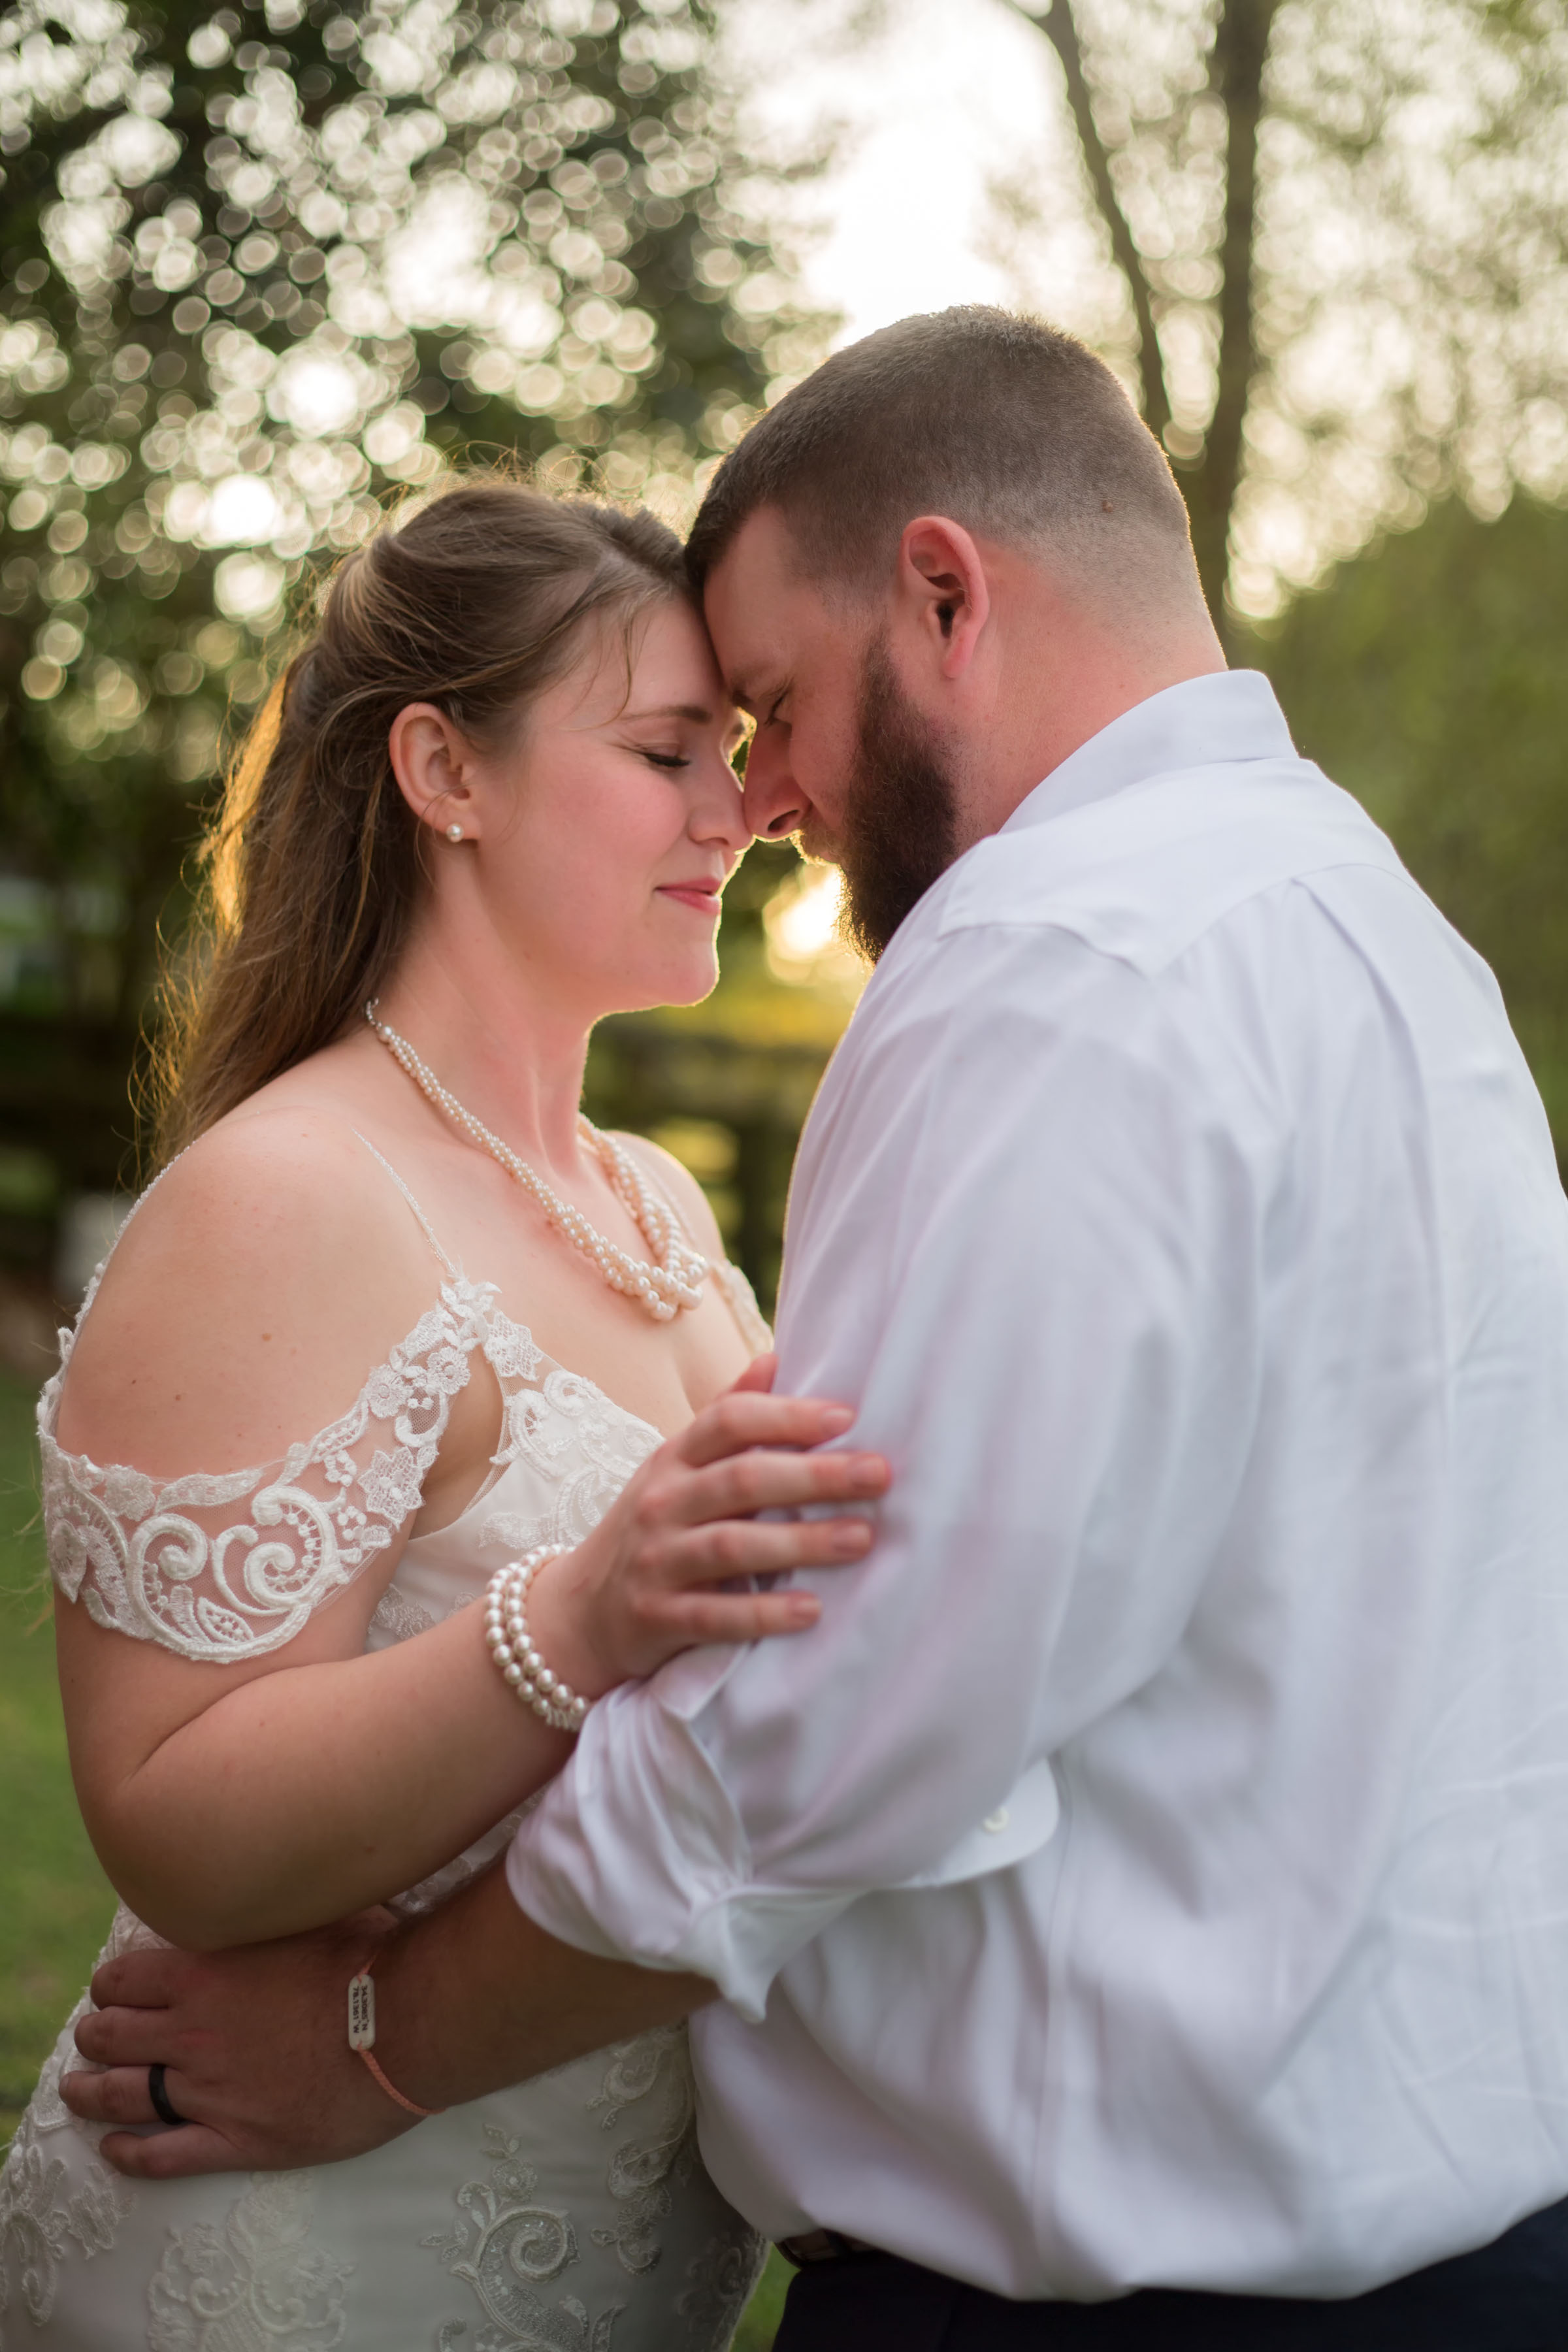 FARM WEDDING PHOTOGRAPHER MARYLAND TIFFANY ABRUZZO- BRIDE & GROOM 2.jpg